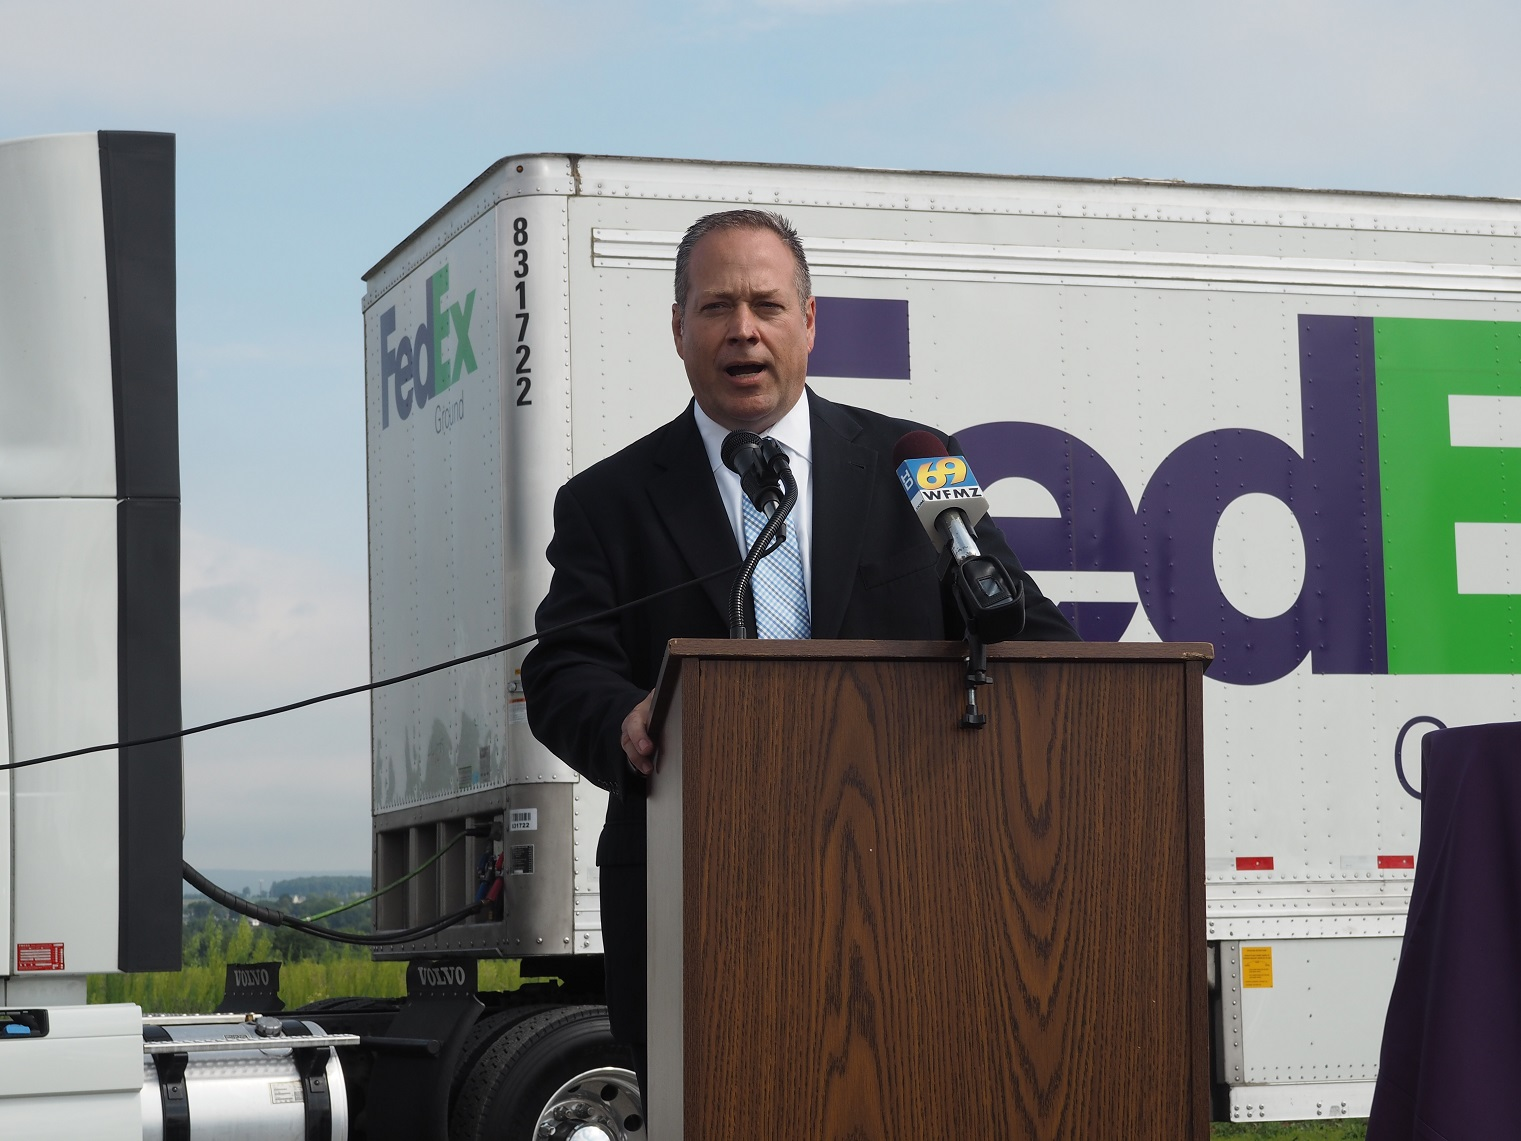 Scott Burns, Fedex Ground's Vice President, Eastern Region, speaking at the Fedex Ground groundbreaking in Allen Township.